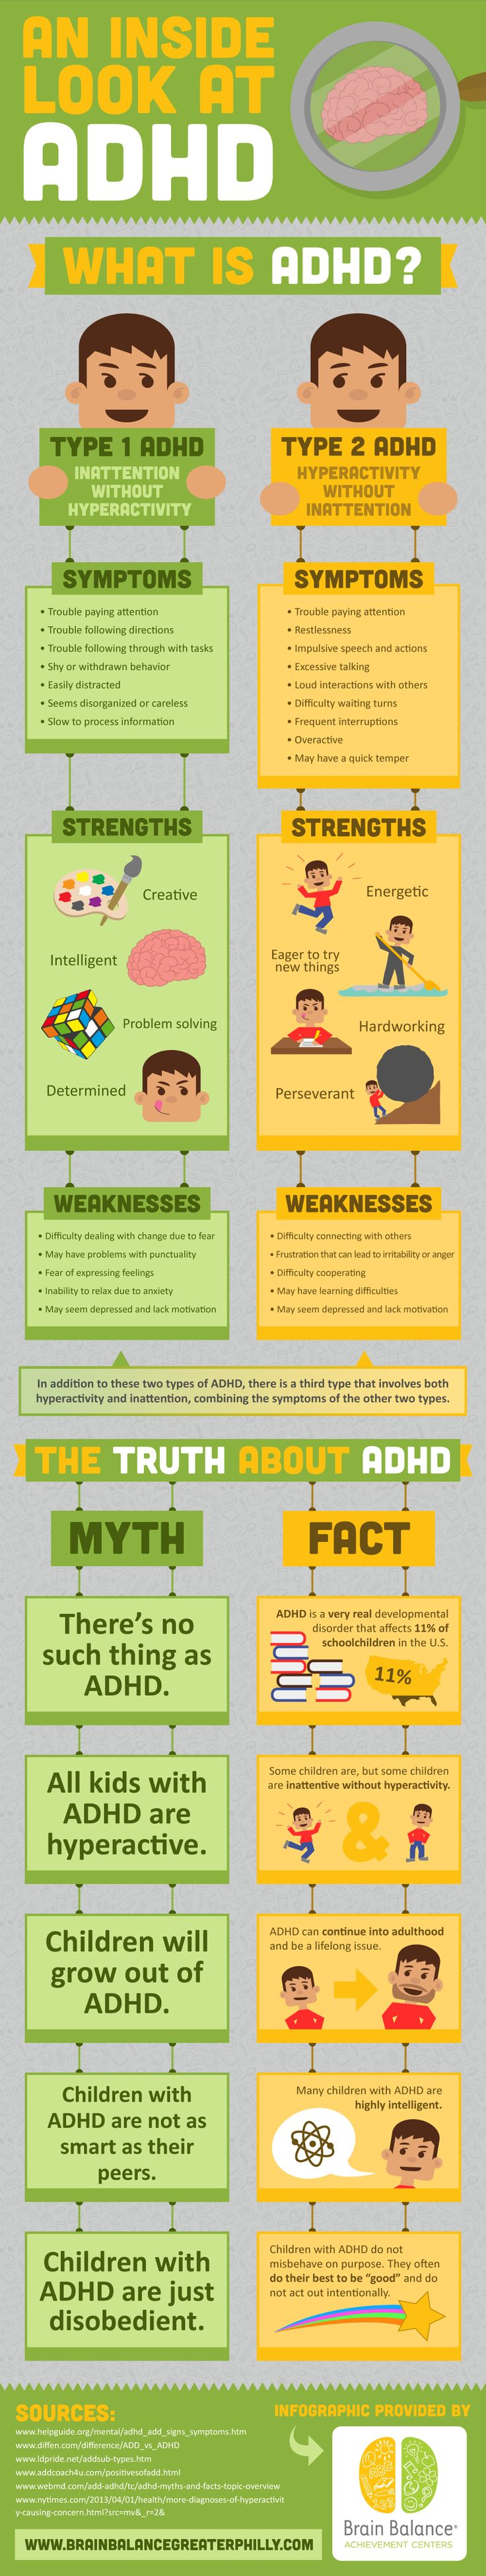 ADHD: Type 1 & Type 2 Iconographs